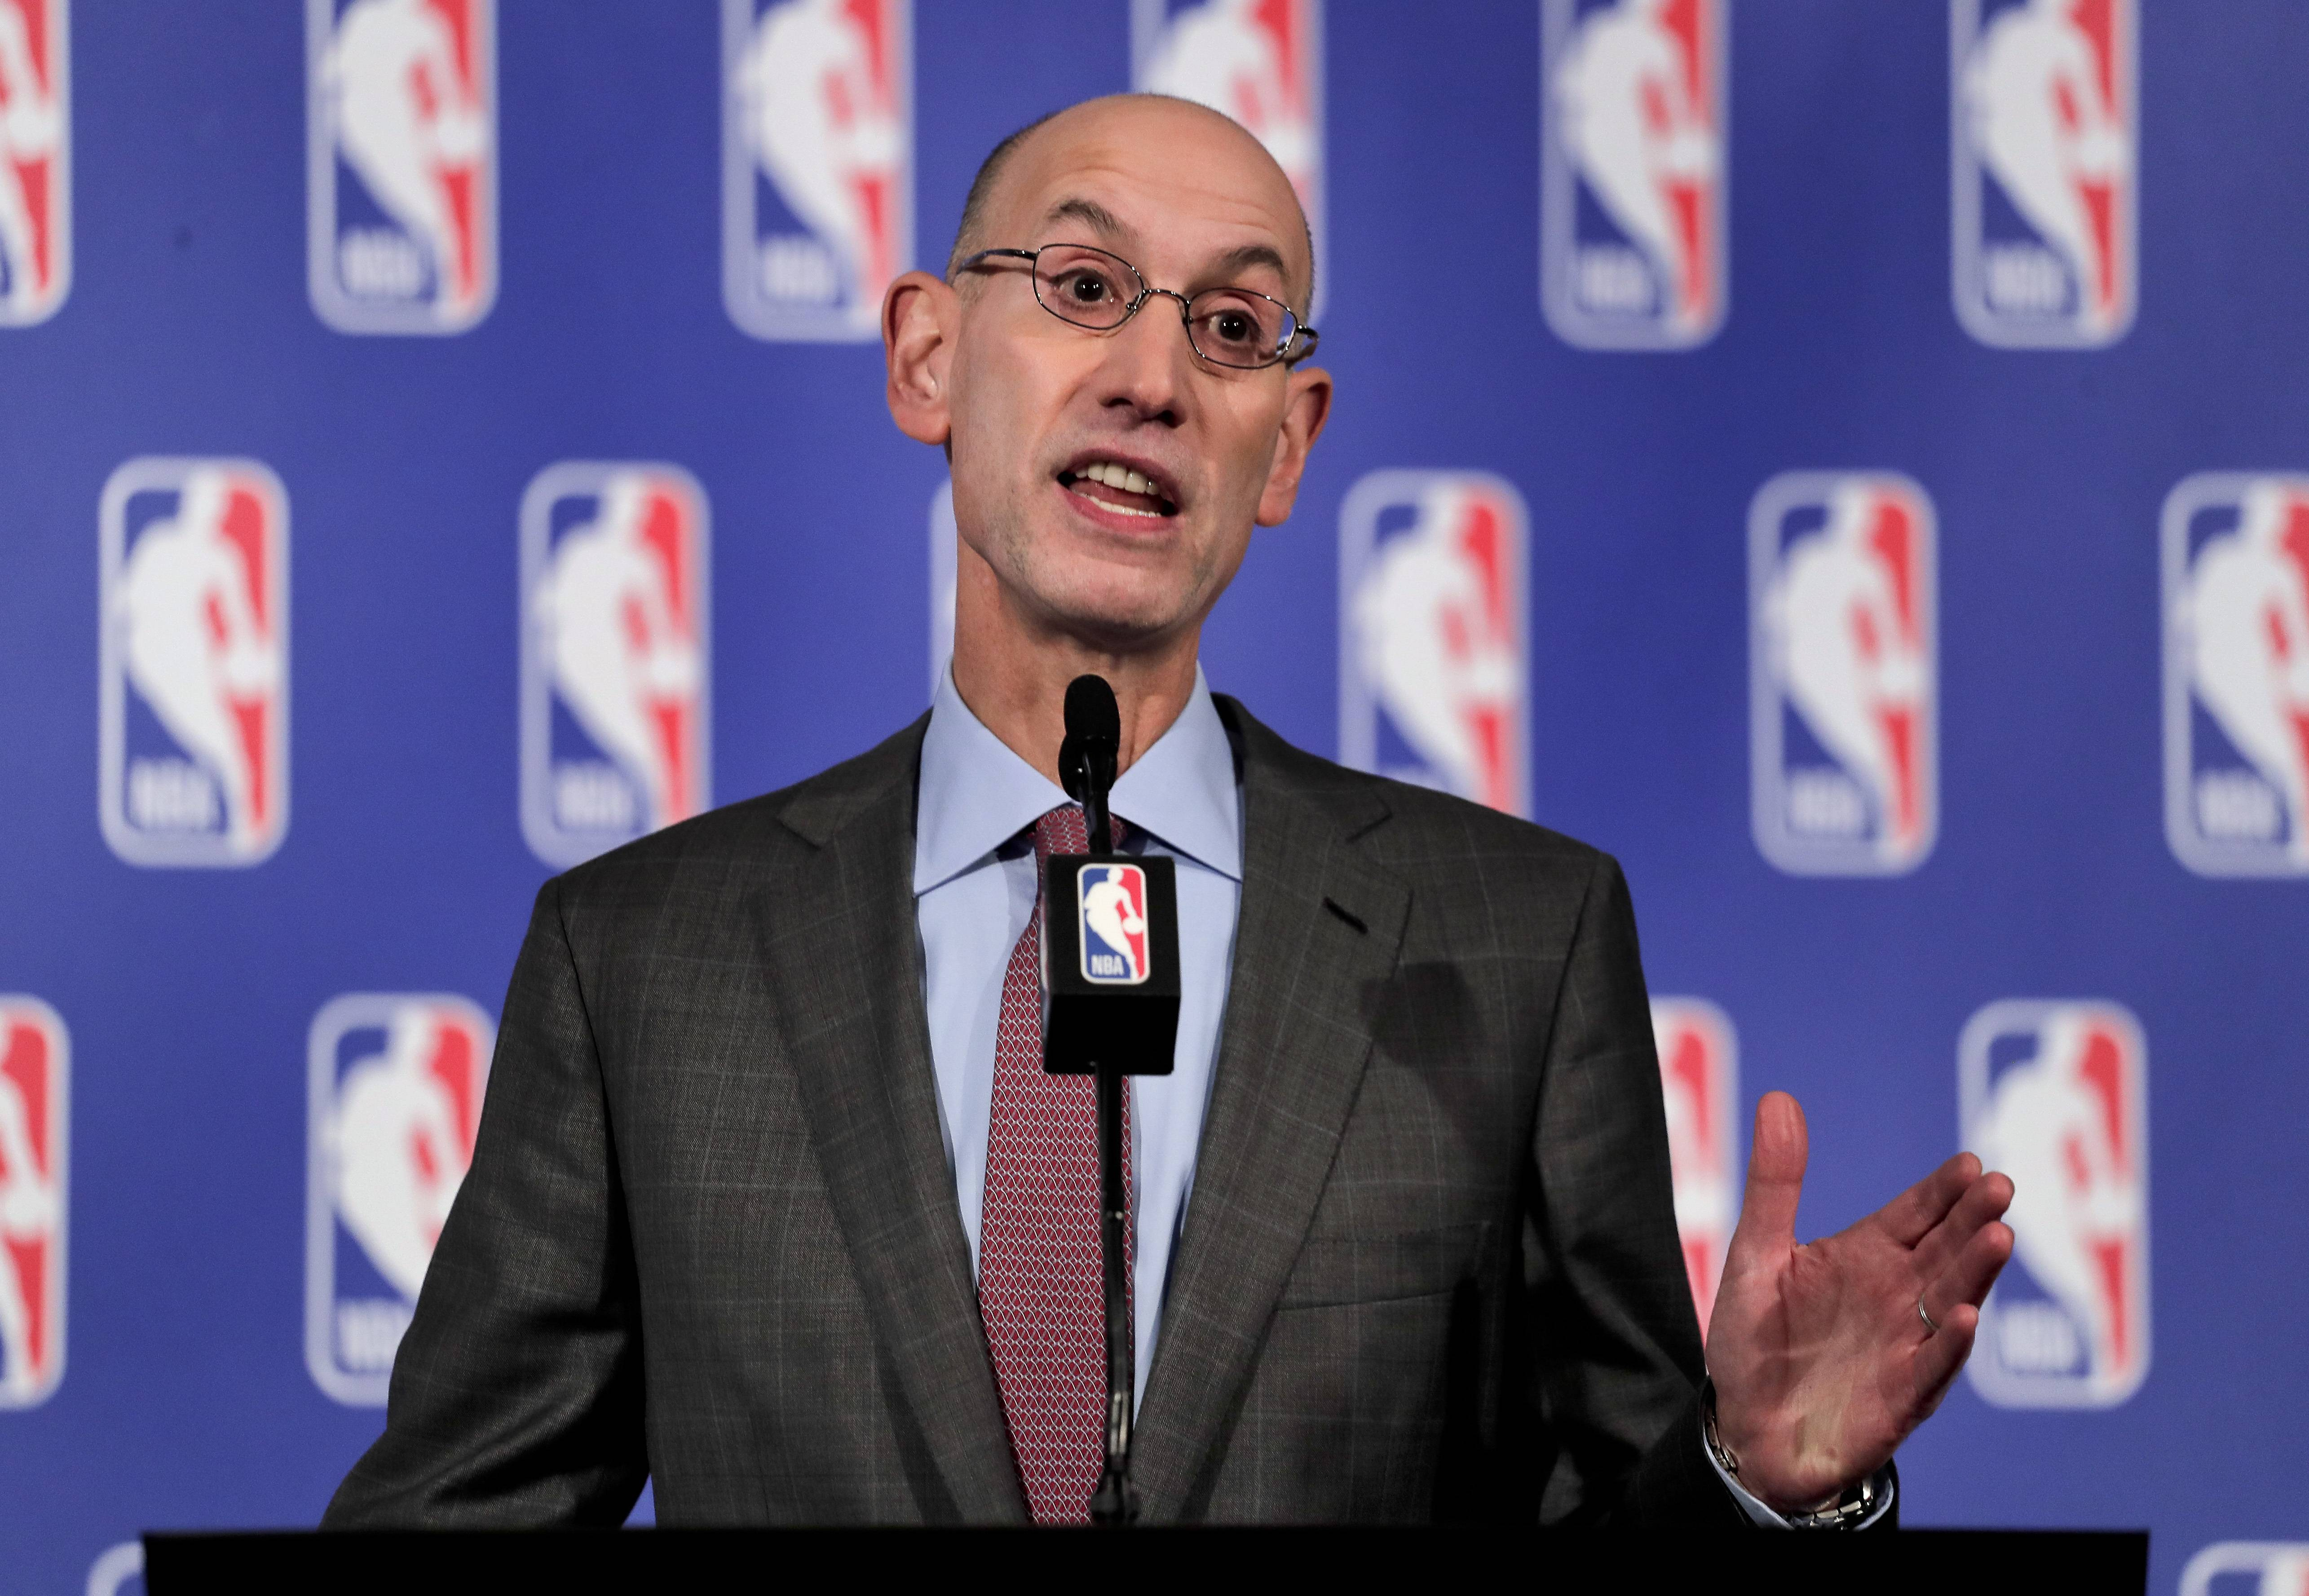 NBA commissioner praises Chicago while awarding 2020 all-star game